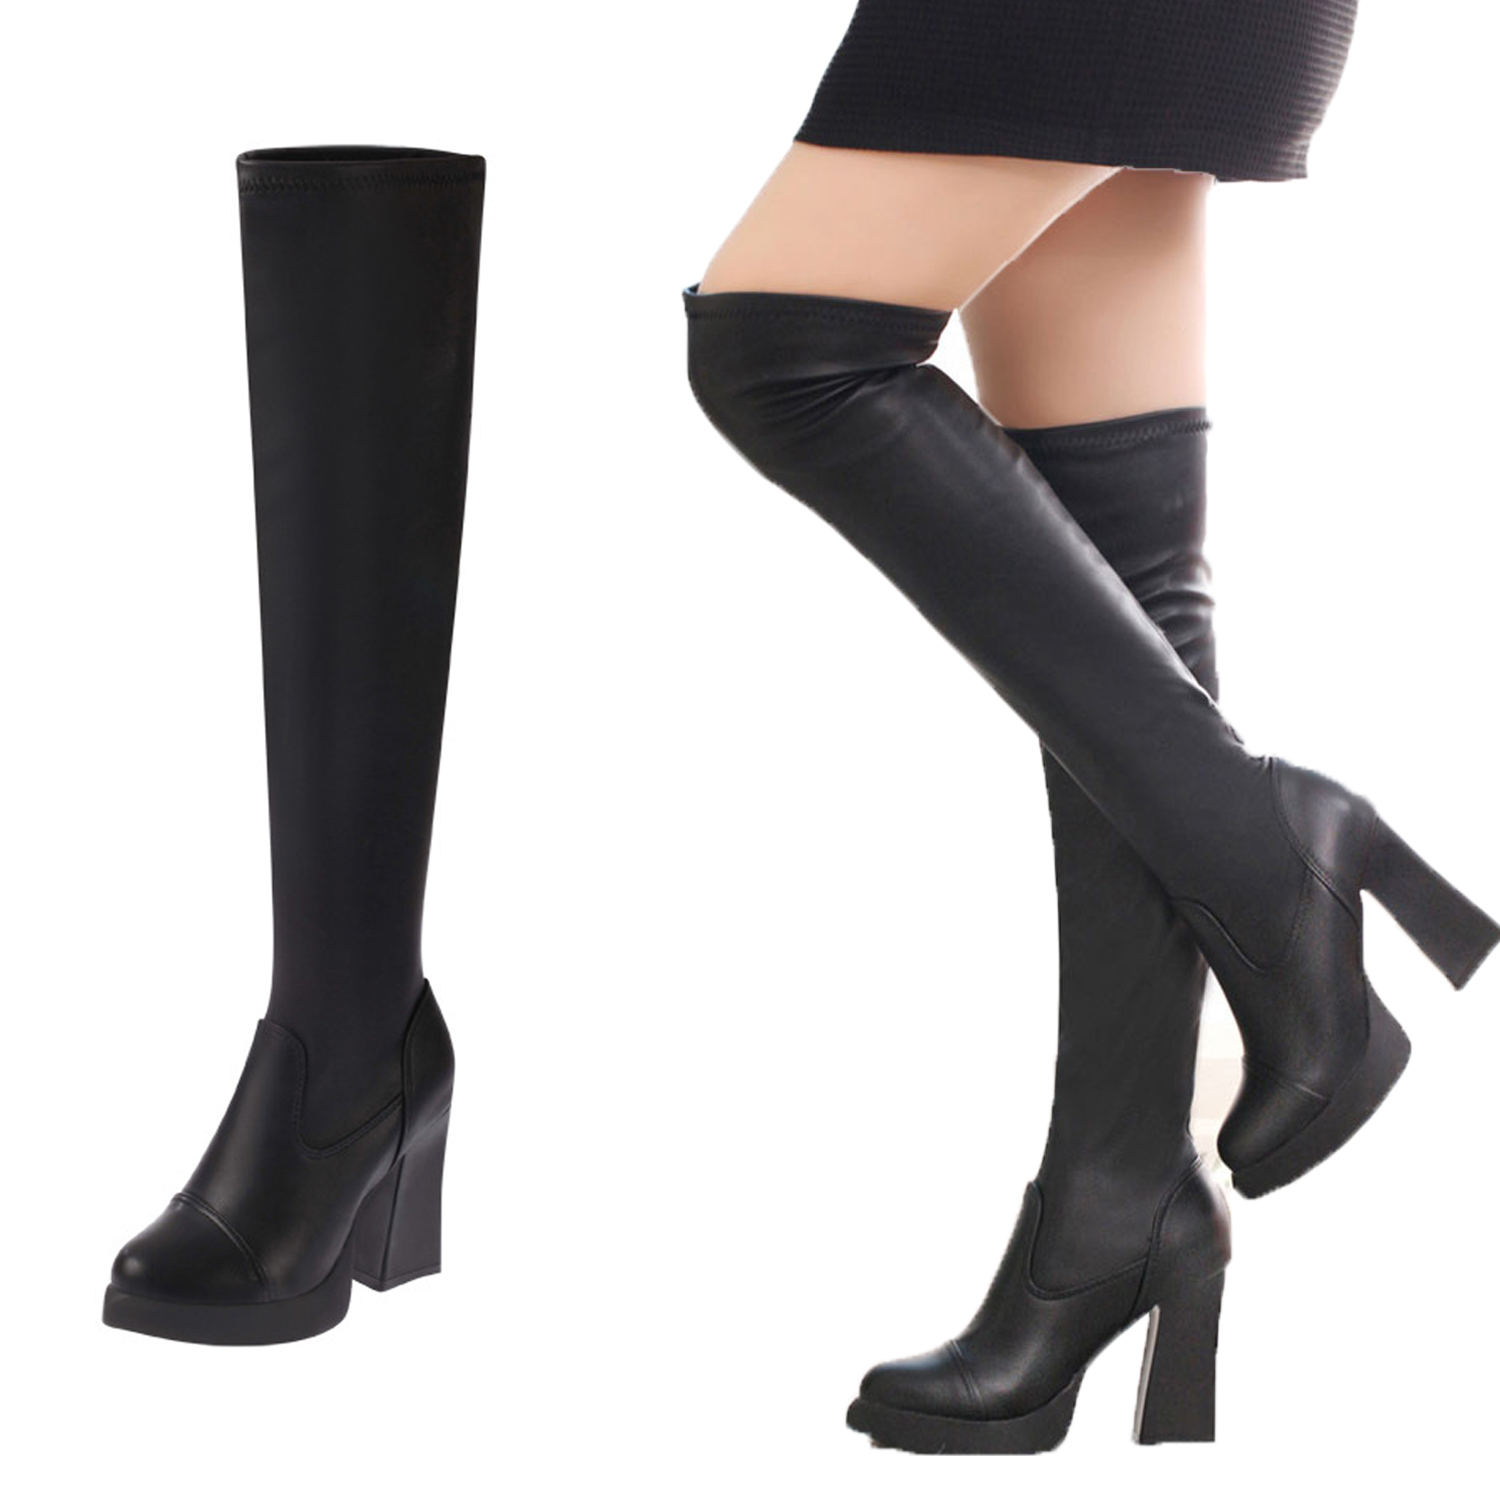 25c4e9428af1 Women Over Knee Boots Fashion Long Boot Winter Footwear Sexy Snow Warm  Thick Plus velvet High Heel Shoes Black High Quality-in Knee-High Boots  from Shoes